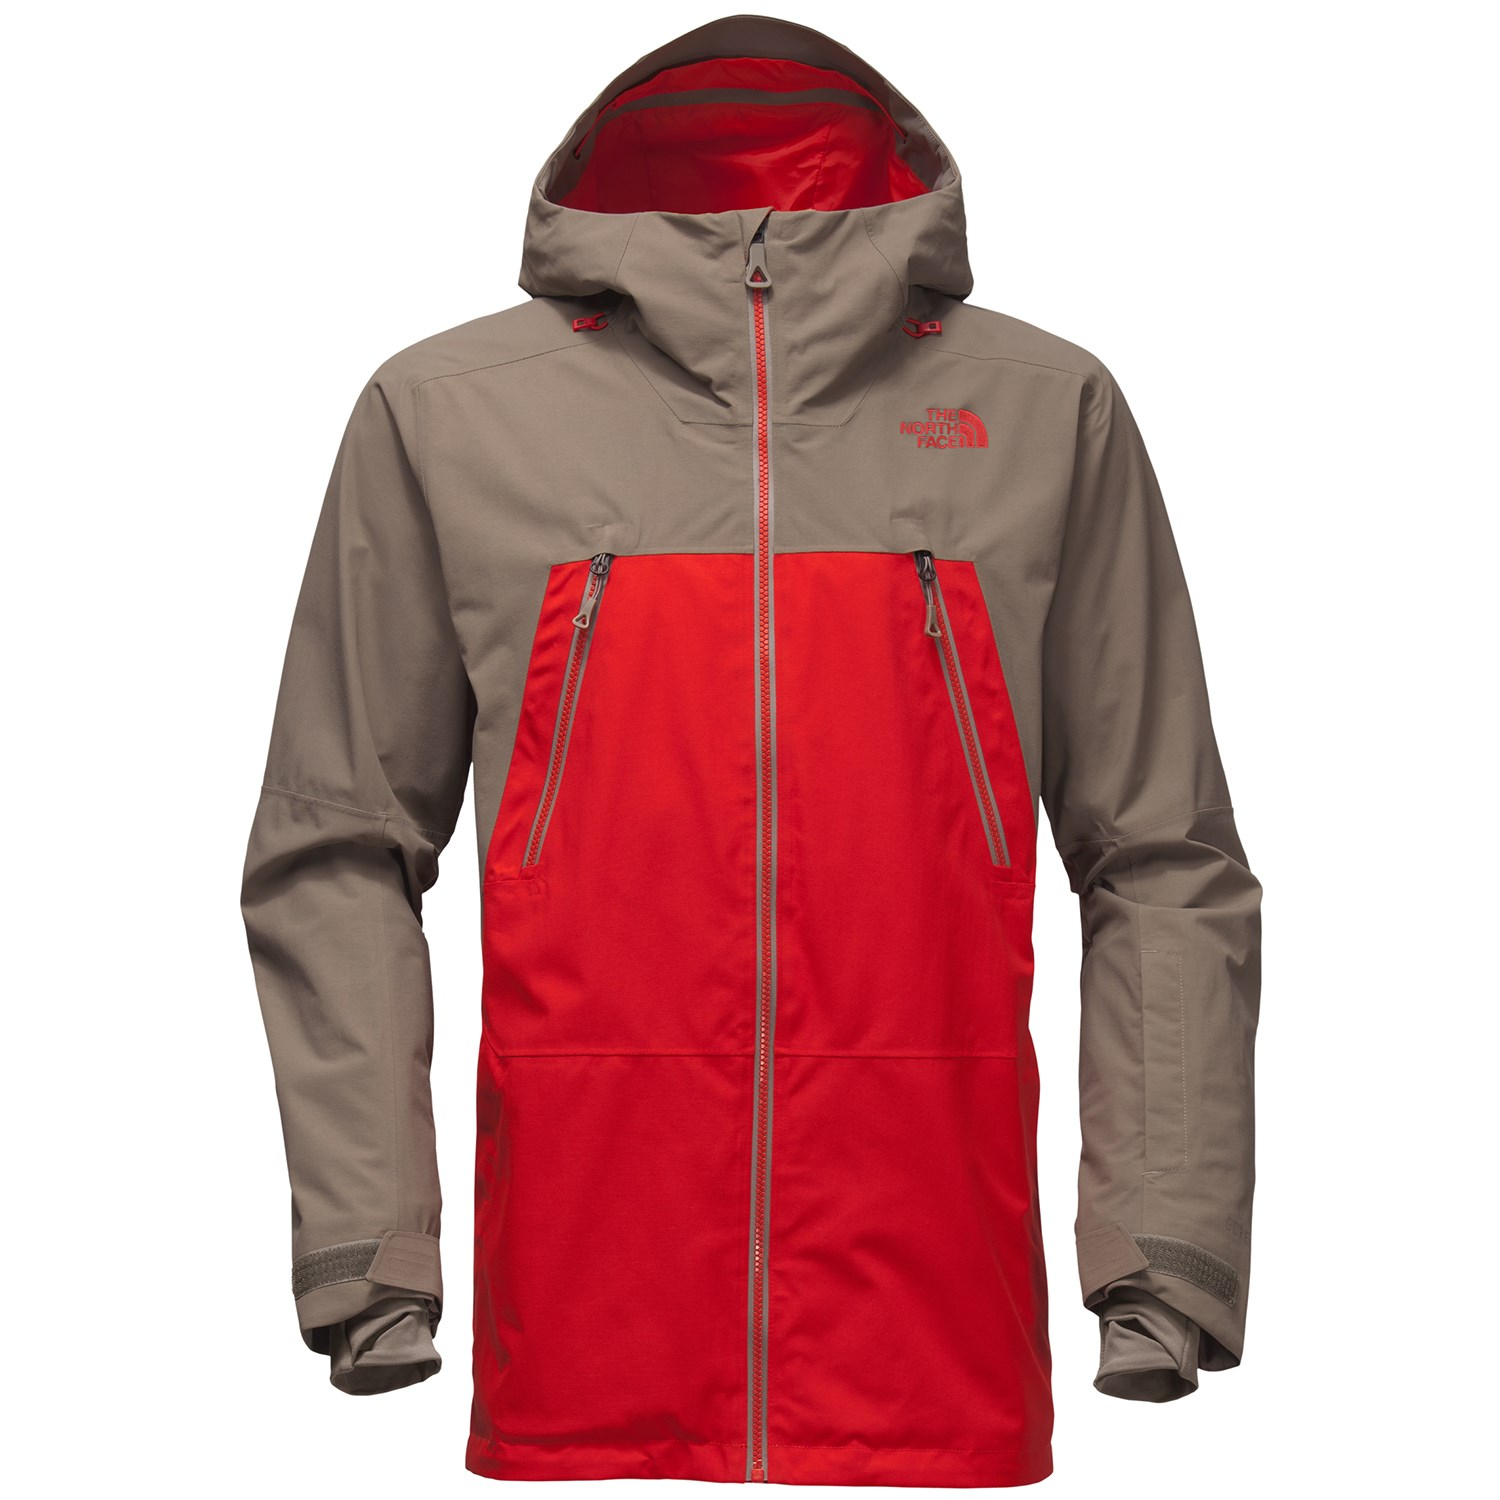 db600010f The North Face Snowboard Jackets - Image Of Jacket